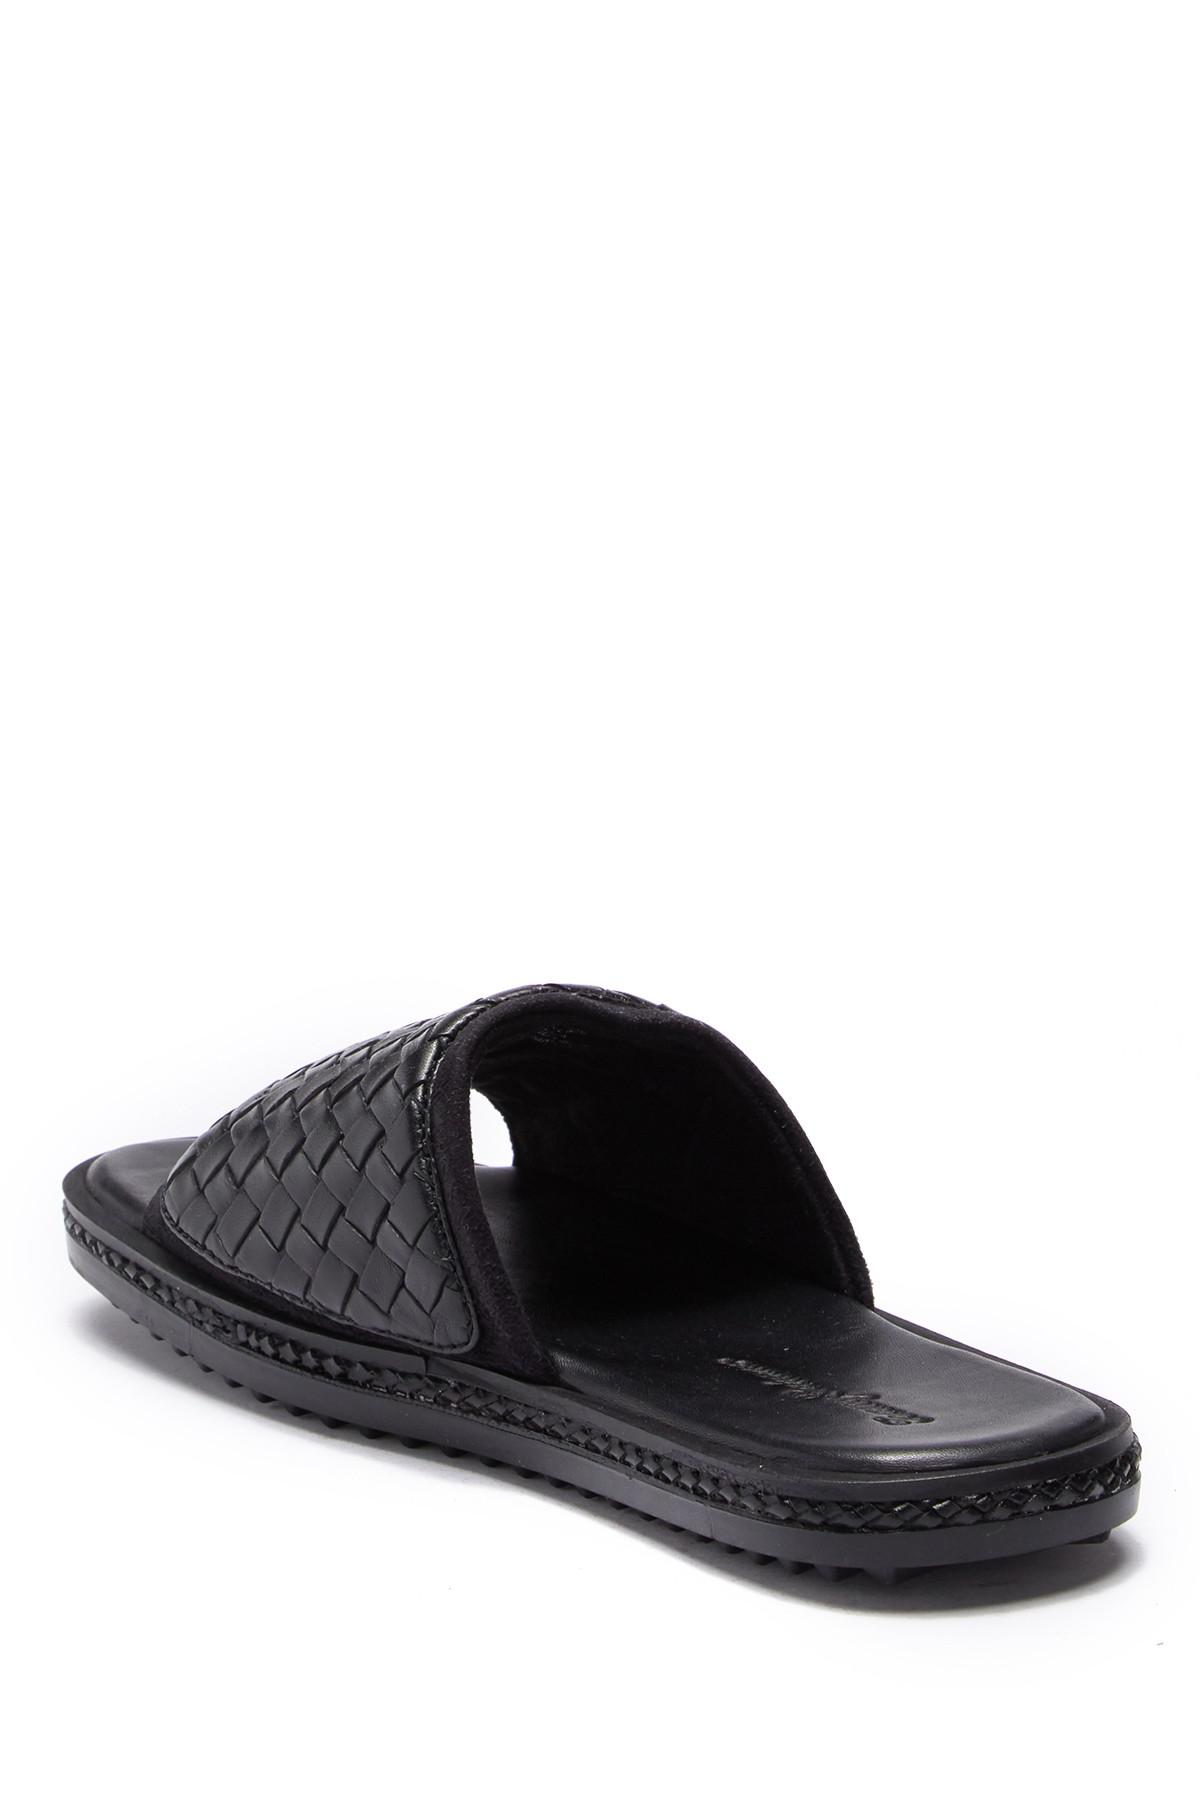 a0c726c64197f6 Tommy Bahama - Black Land Crest Leather Slide Sandal for Men - Lyst. View  fullscreen